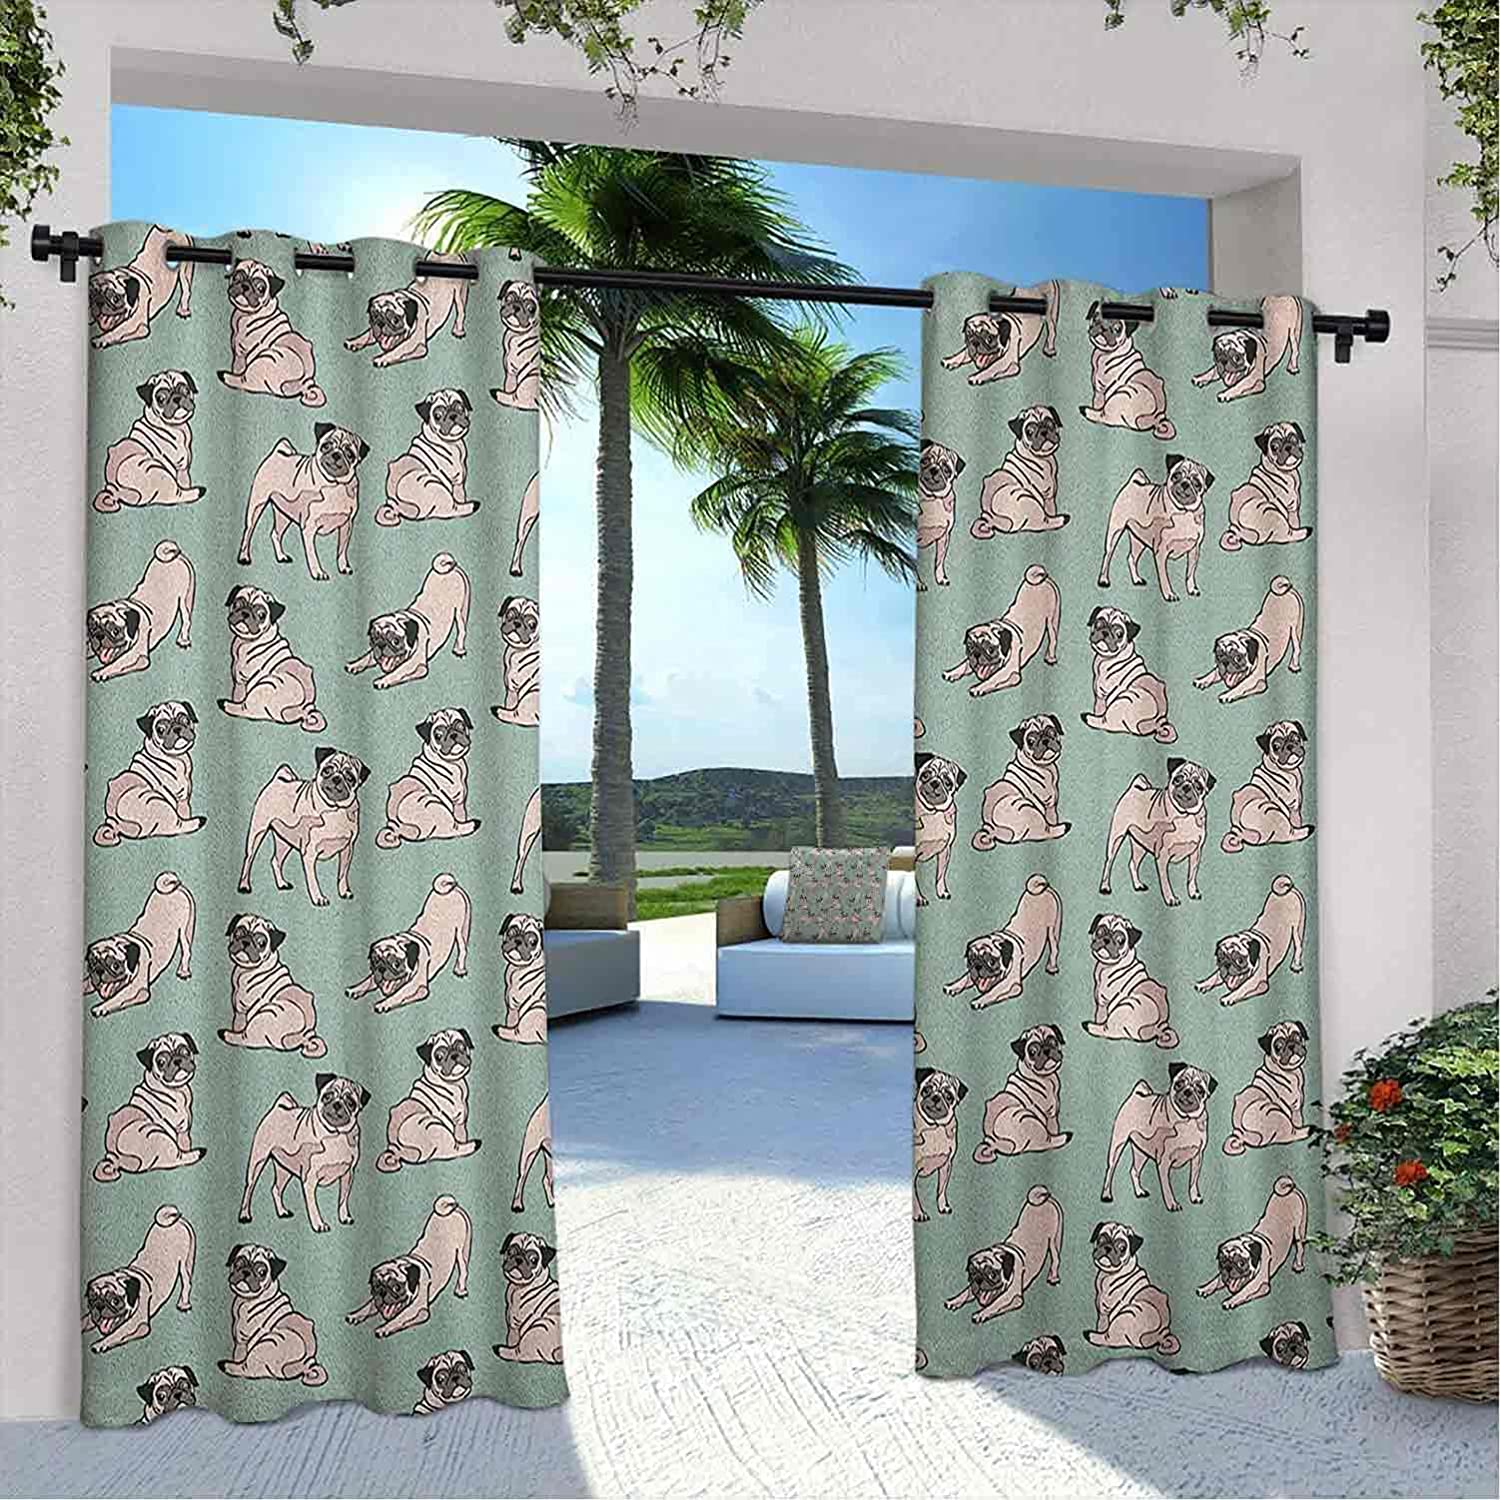 Outdoor San Francisco Max 81% OFF Mall Pavilion Pug Curtain Dogs with States Various S Sitting